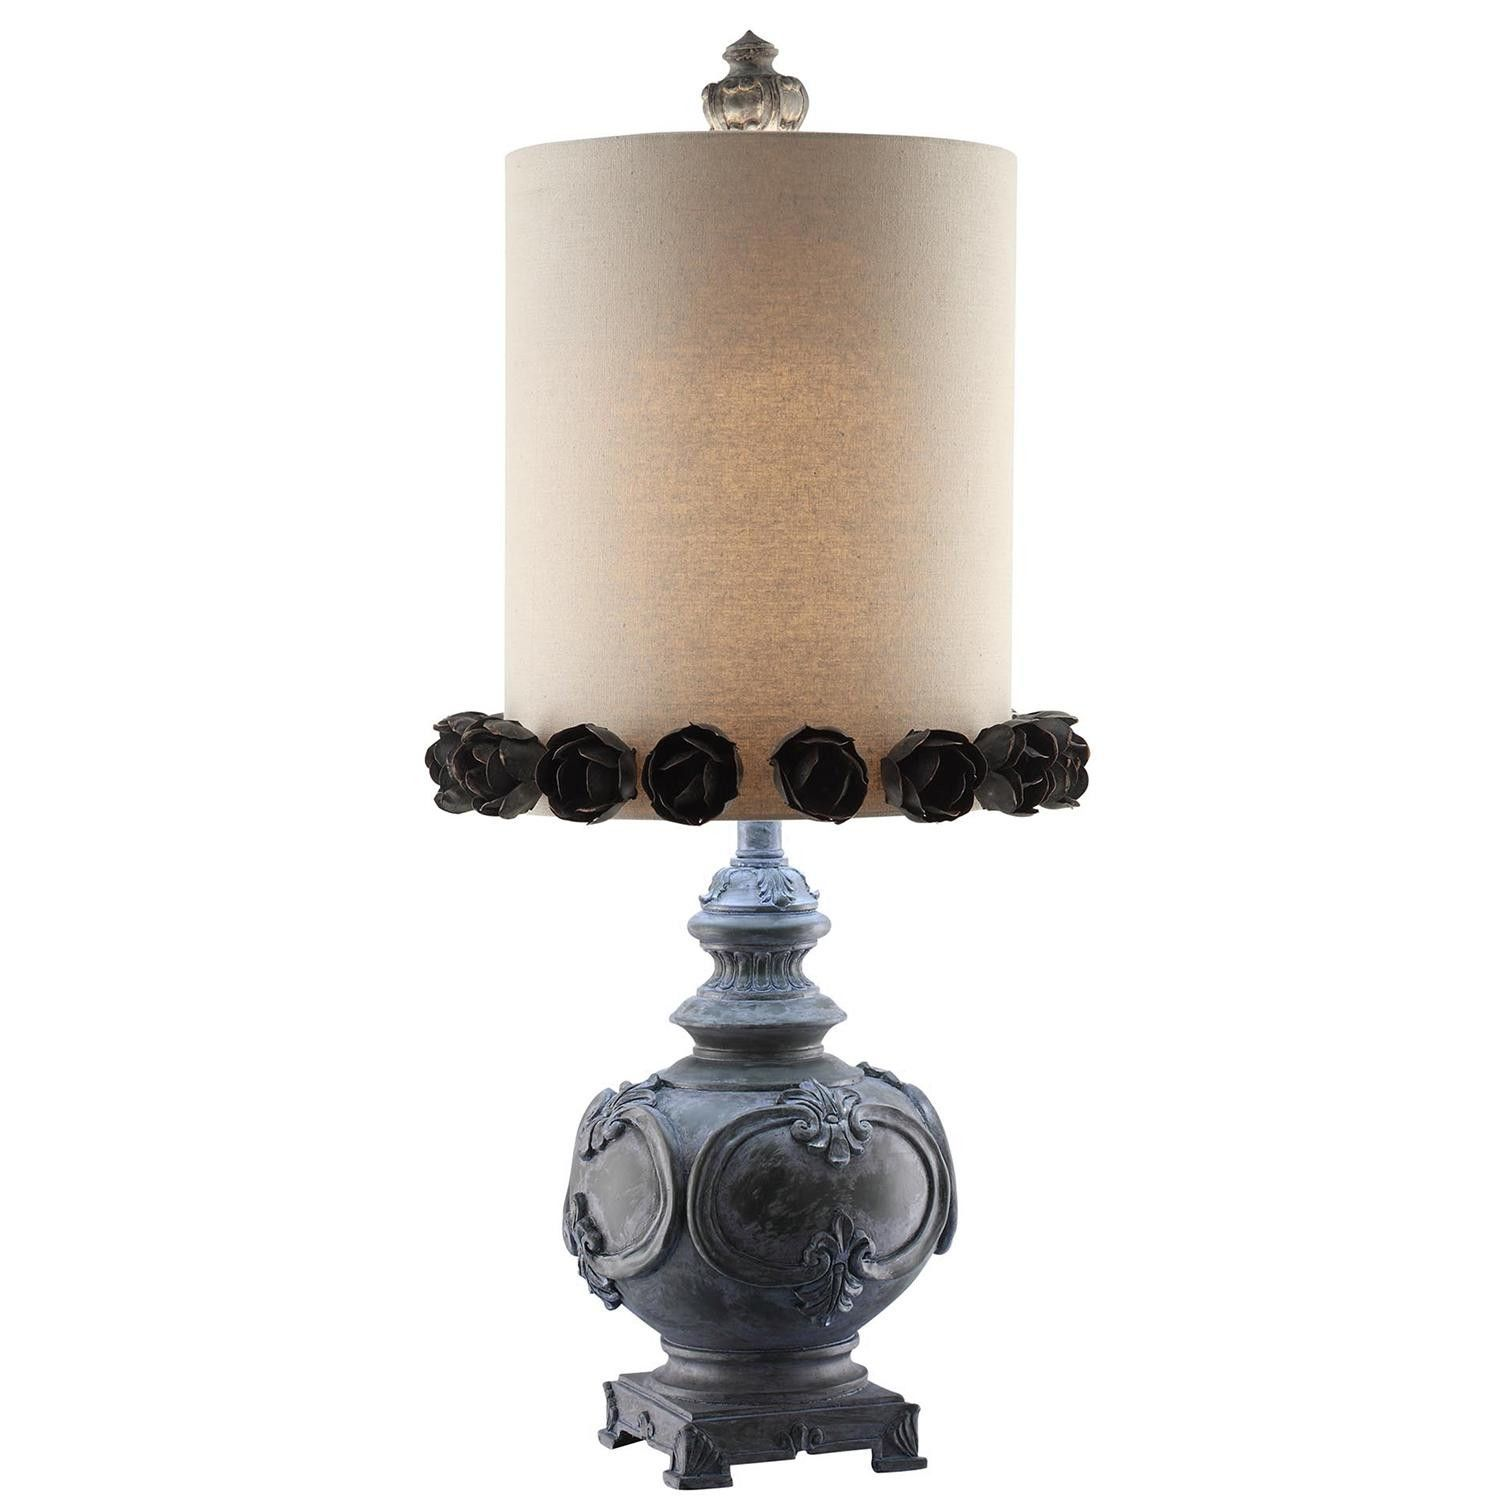 Crestview Victoria Table Lamp - CVAVP031